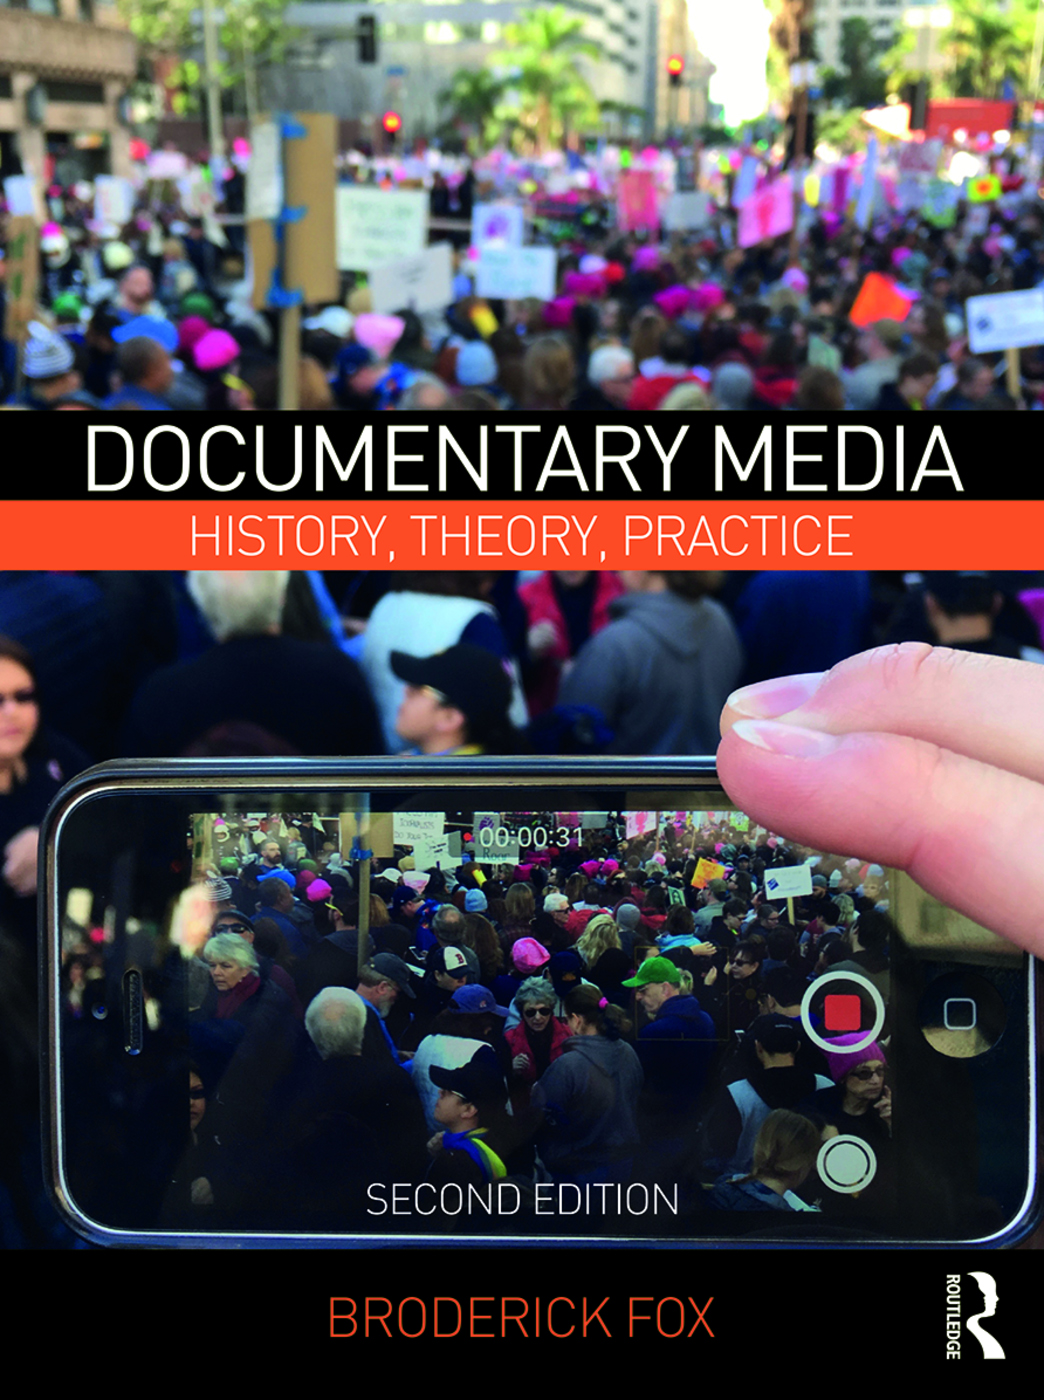 <em>Documentary Media: History, Theory, Practice</em> by Broderick Fox. Routledge 2018